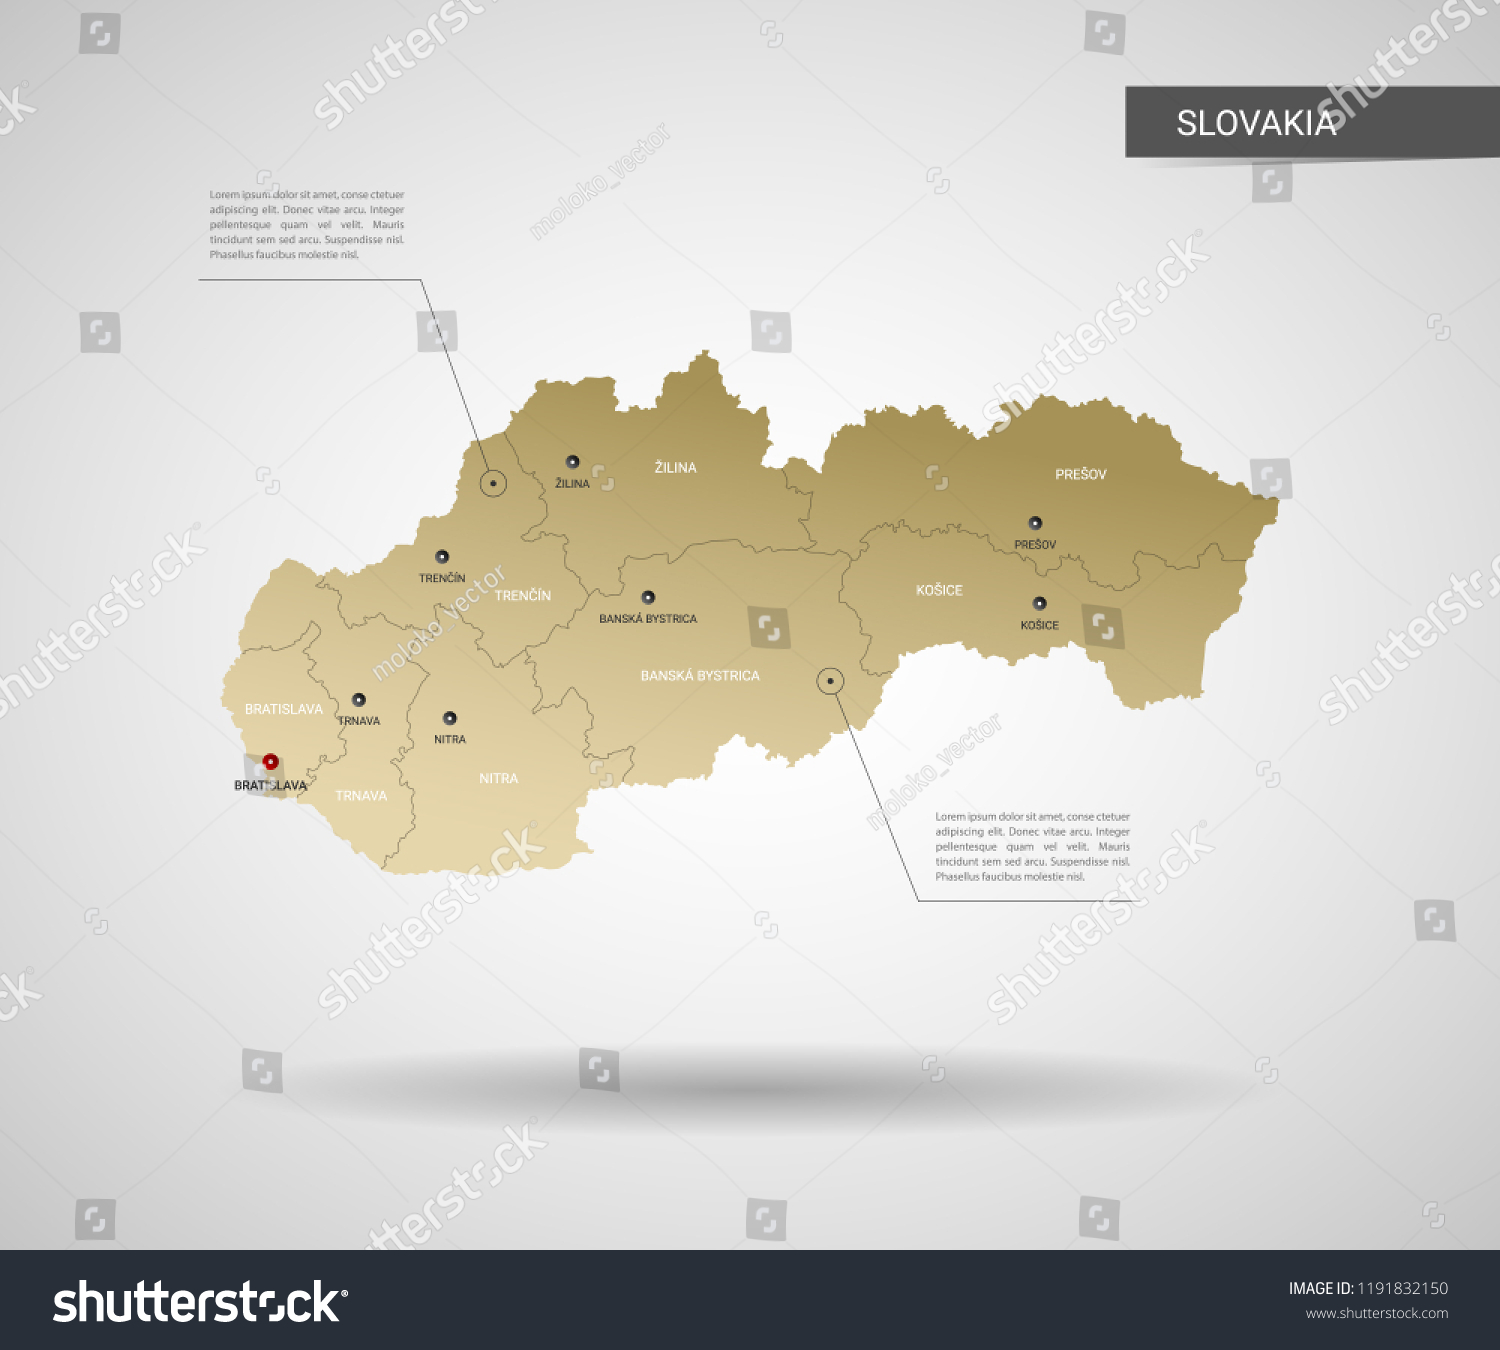 stylized vector slovakia map infographic 3d gold map illustration with cities borders capital